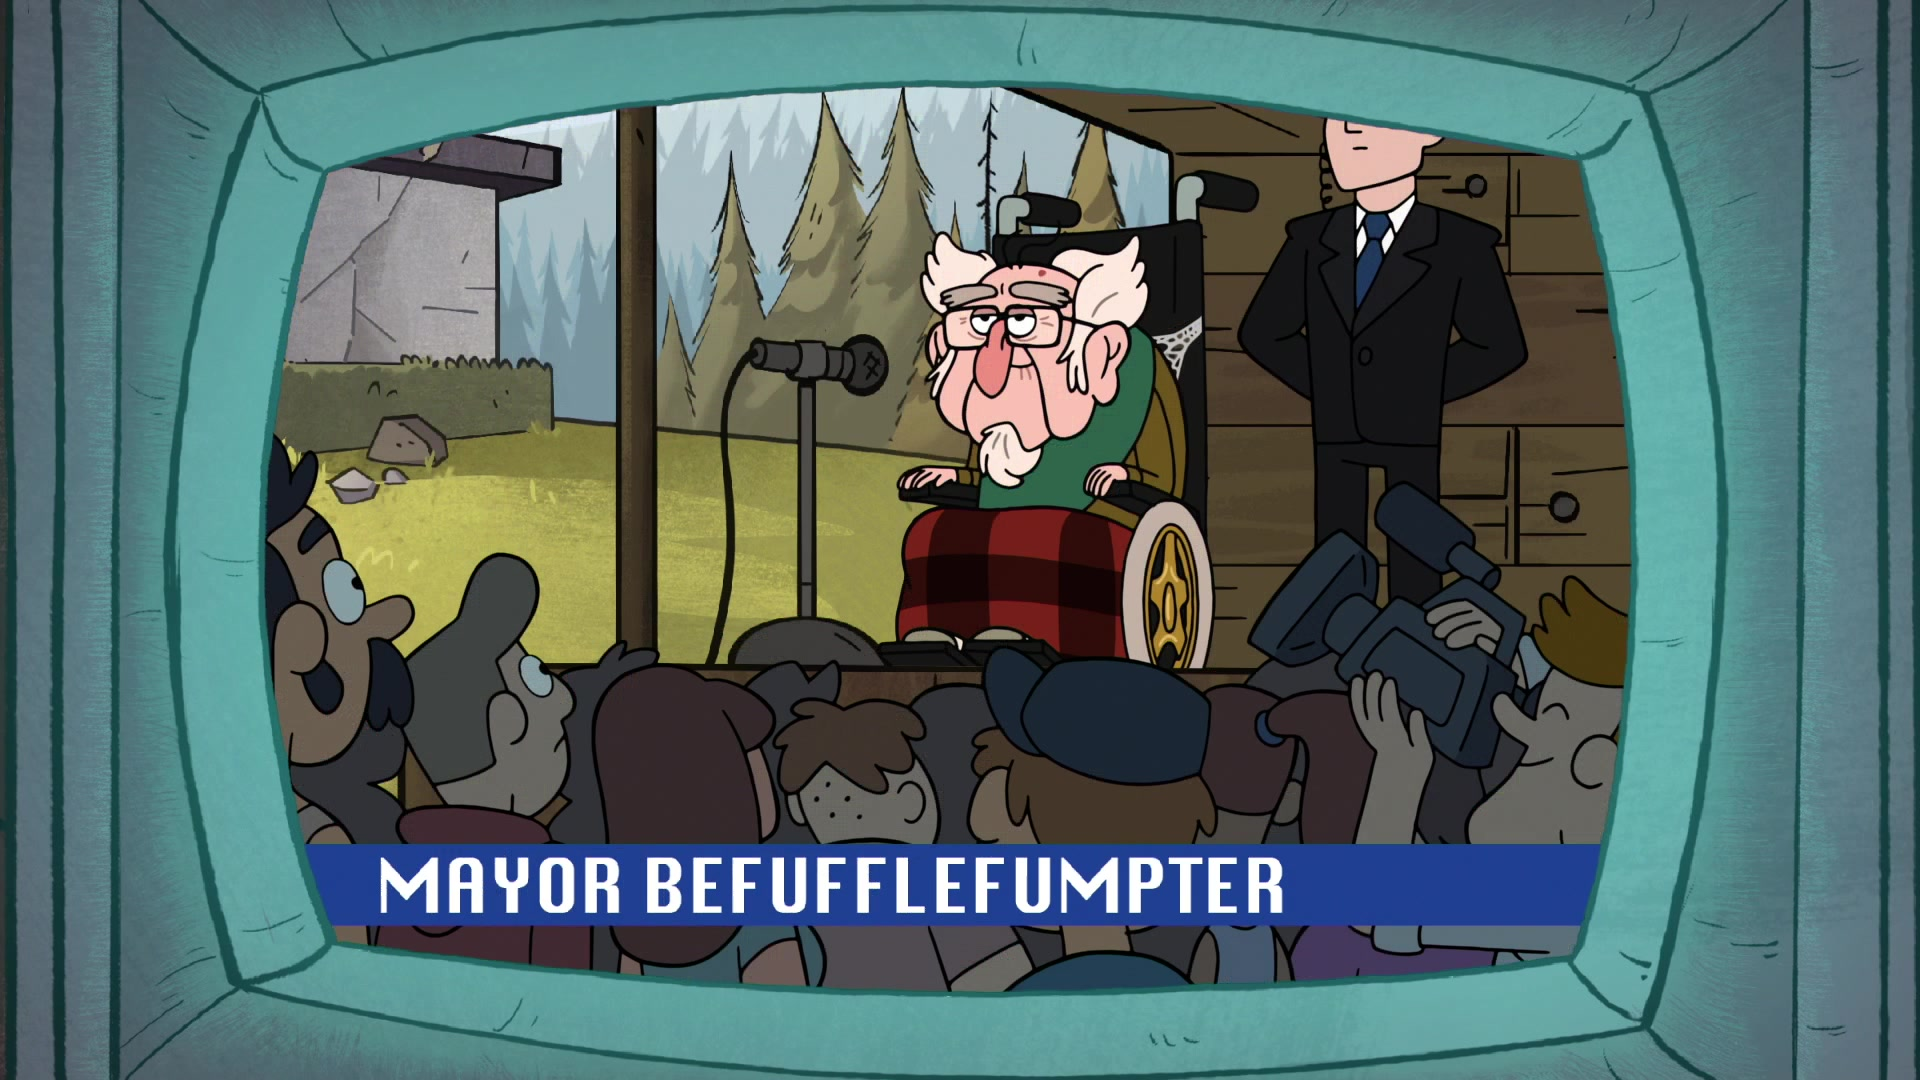 Mayor Befufftlefumpter